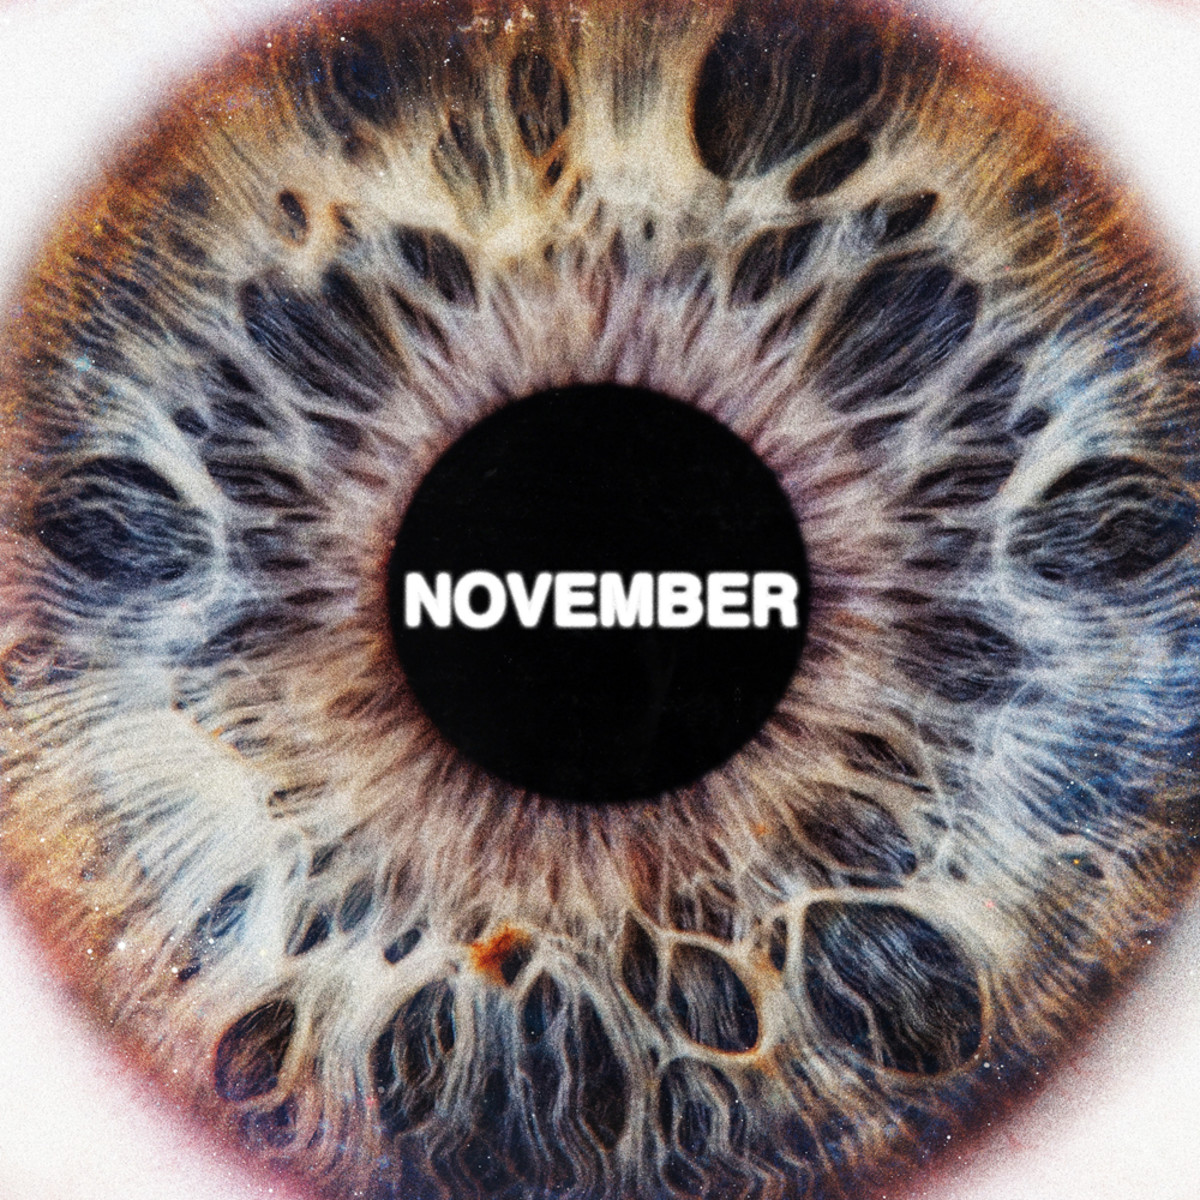 sir-november-album-art